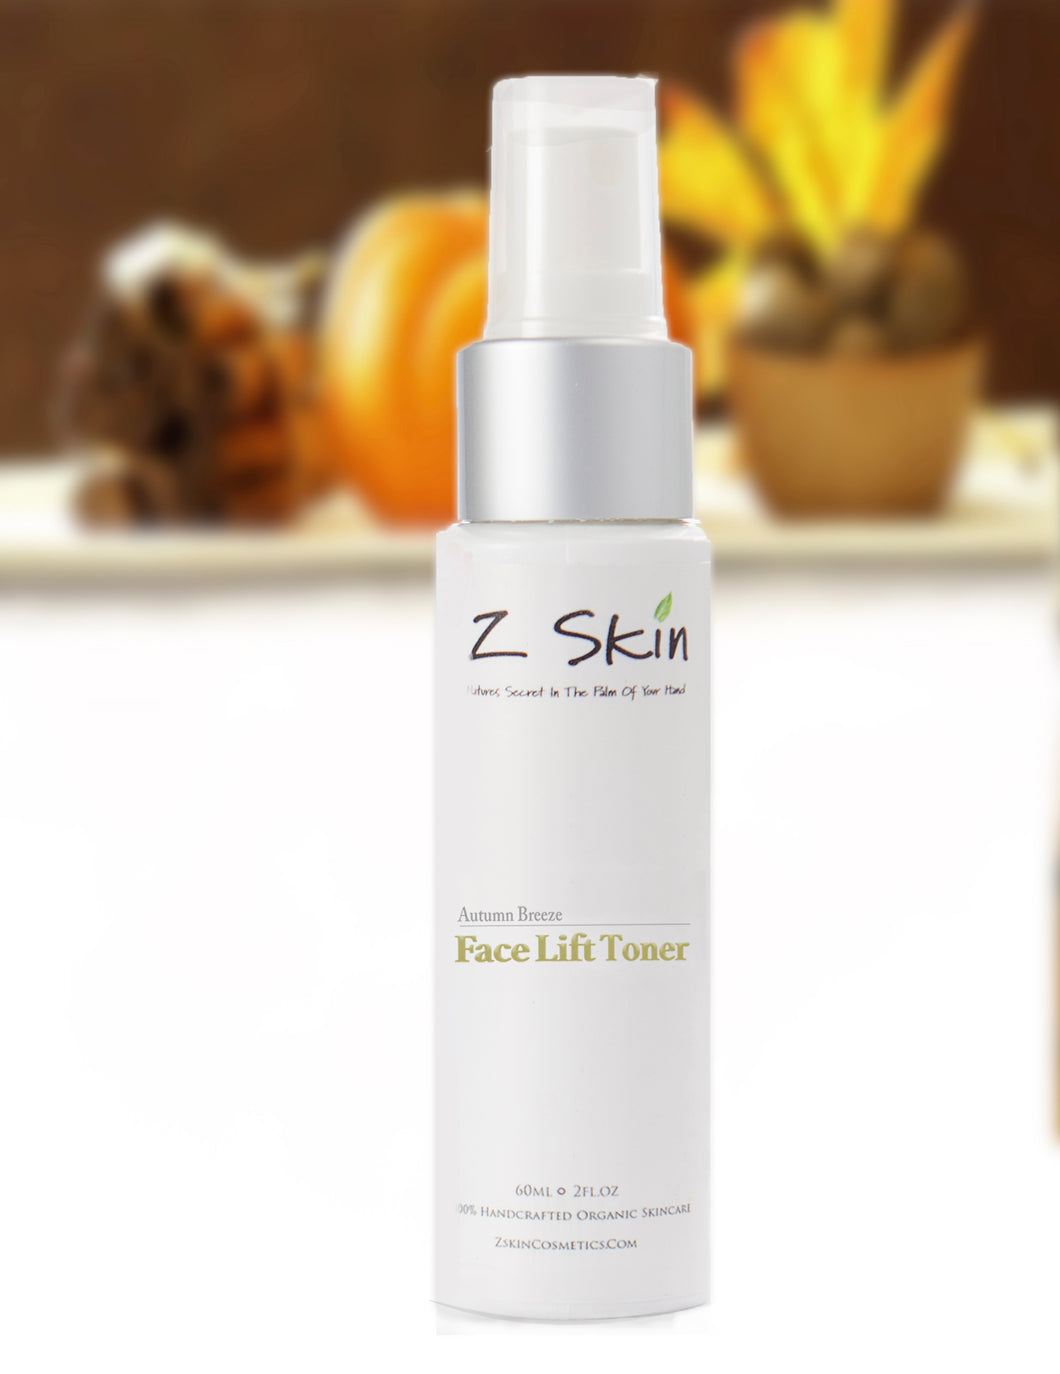 Z Skin Cosmetics Autumn Breeze Face Lift Toner